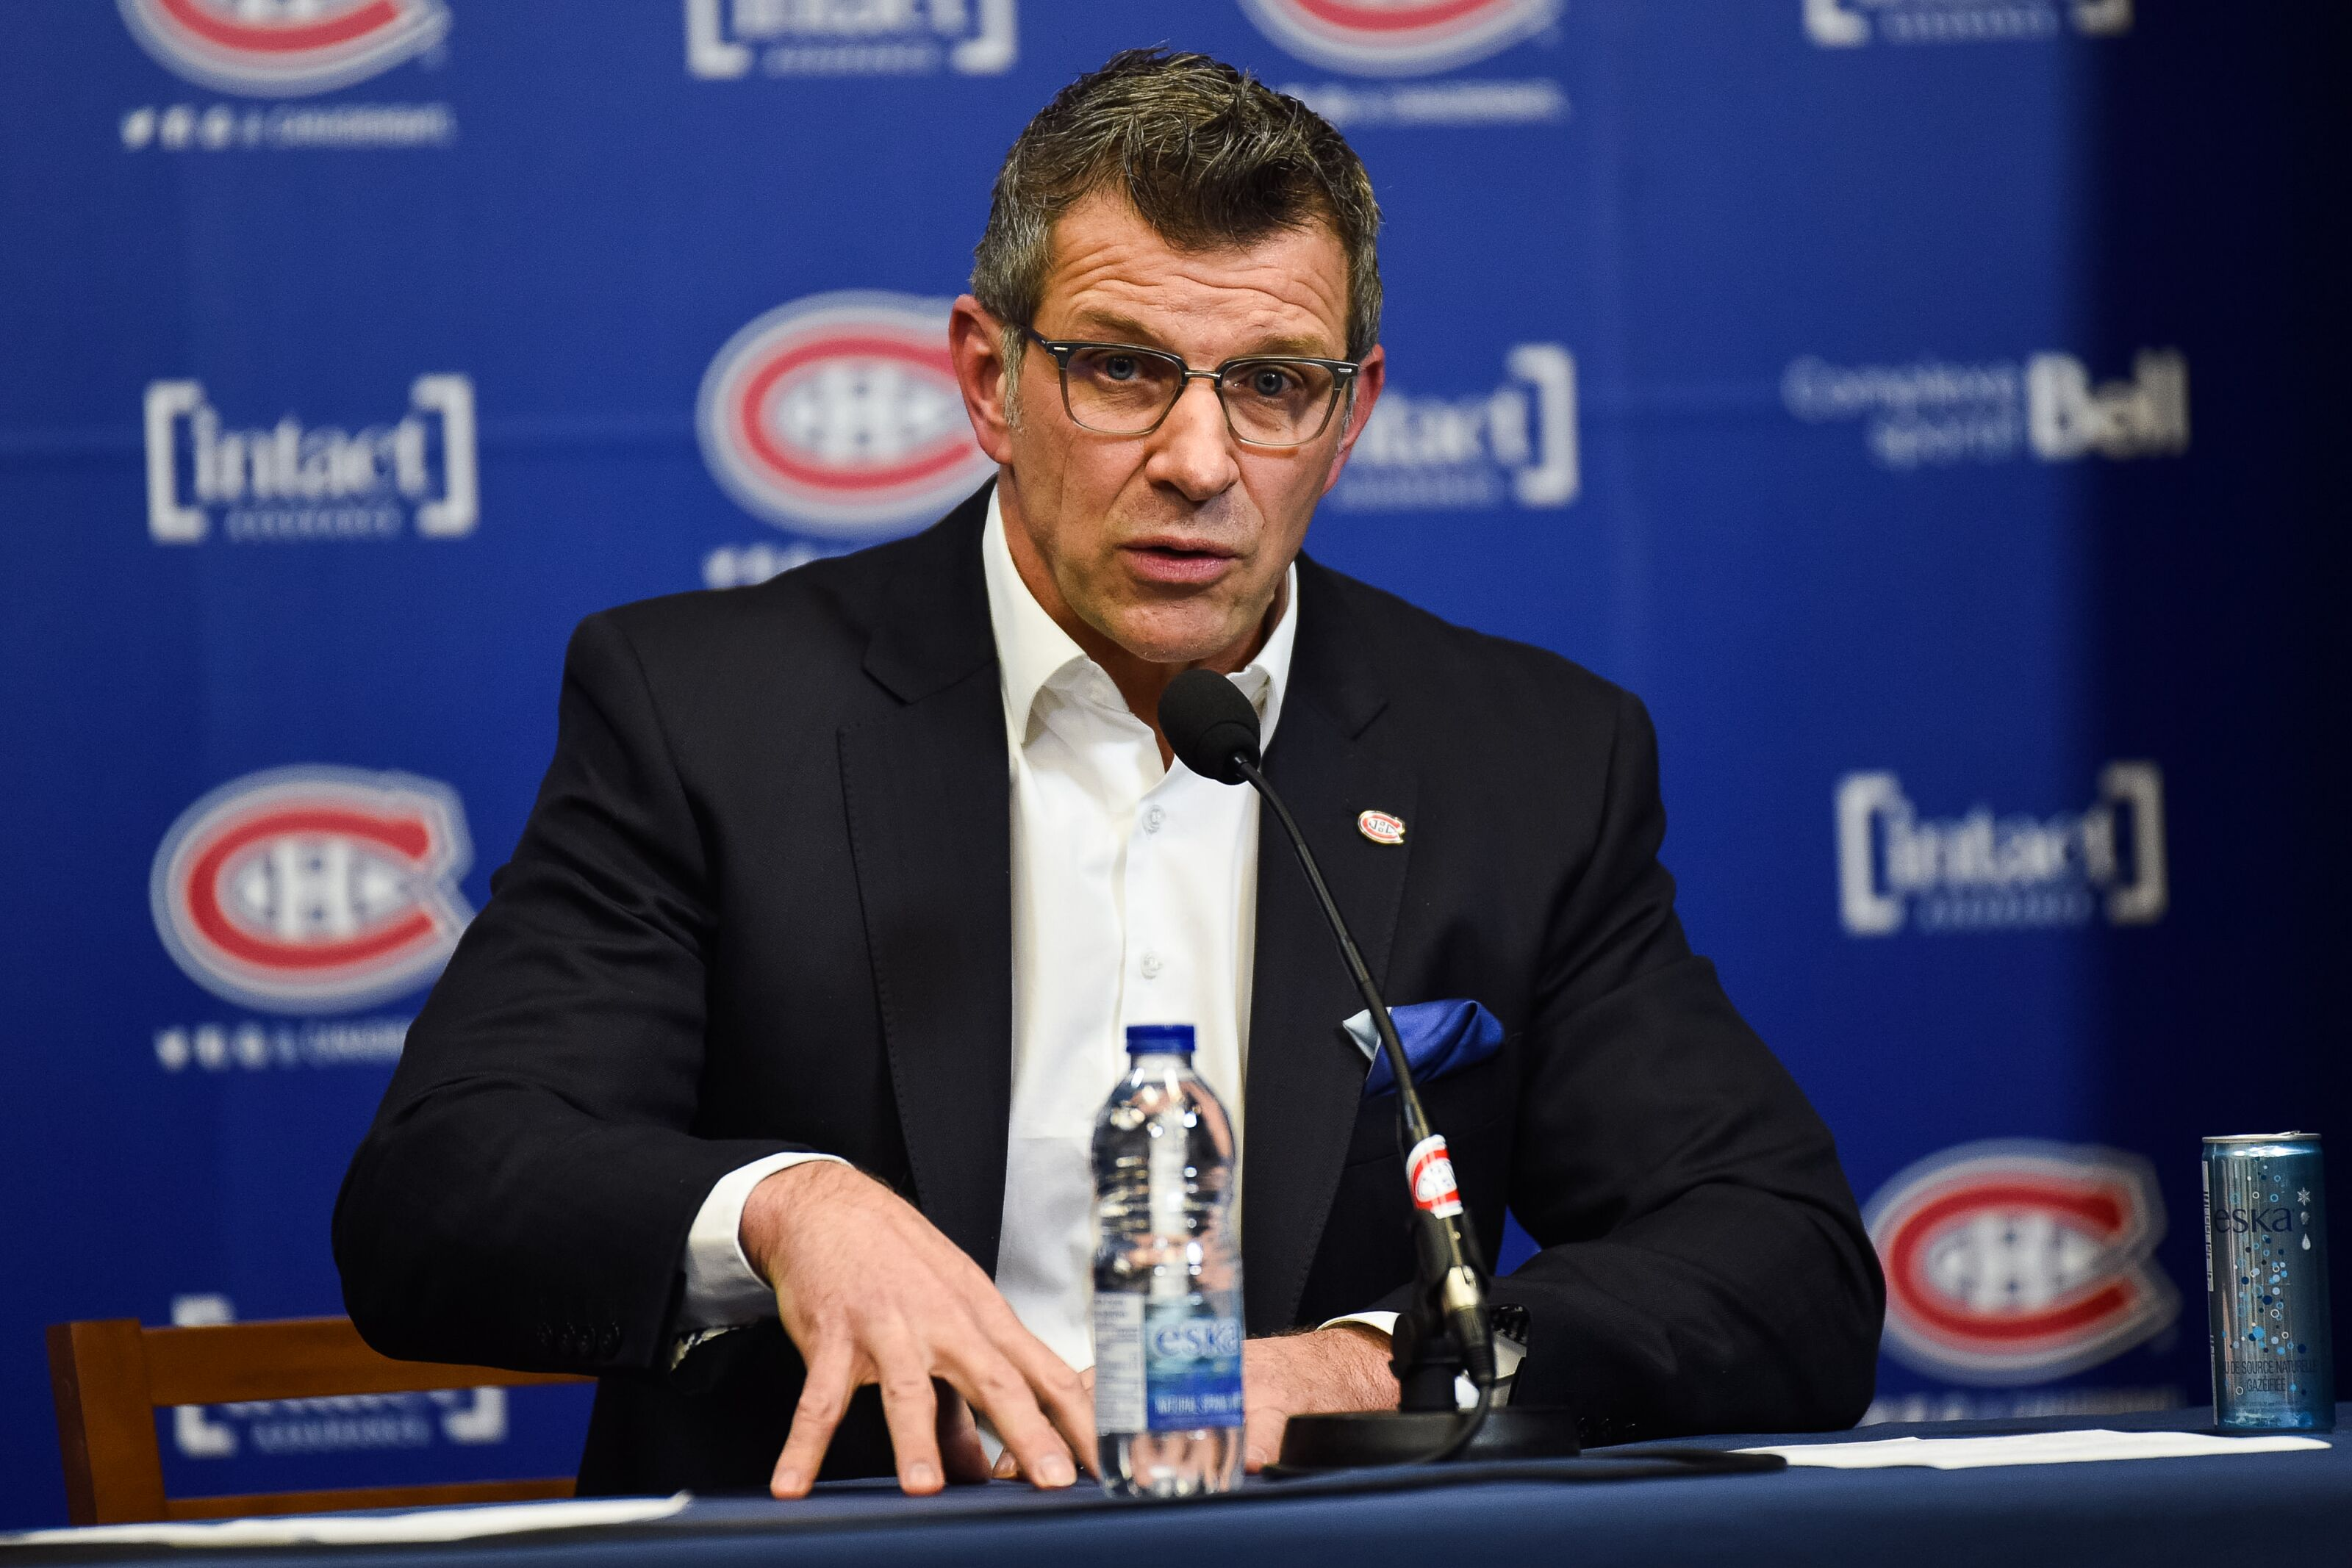 943922210-nhl-apr-9-montreal-canadiens-end-of-season-press-conference.jpg